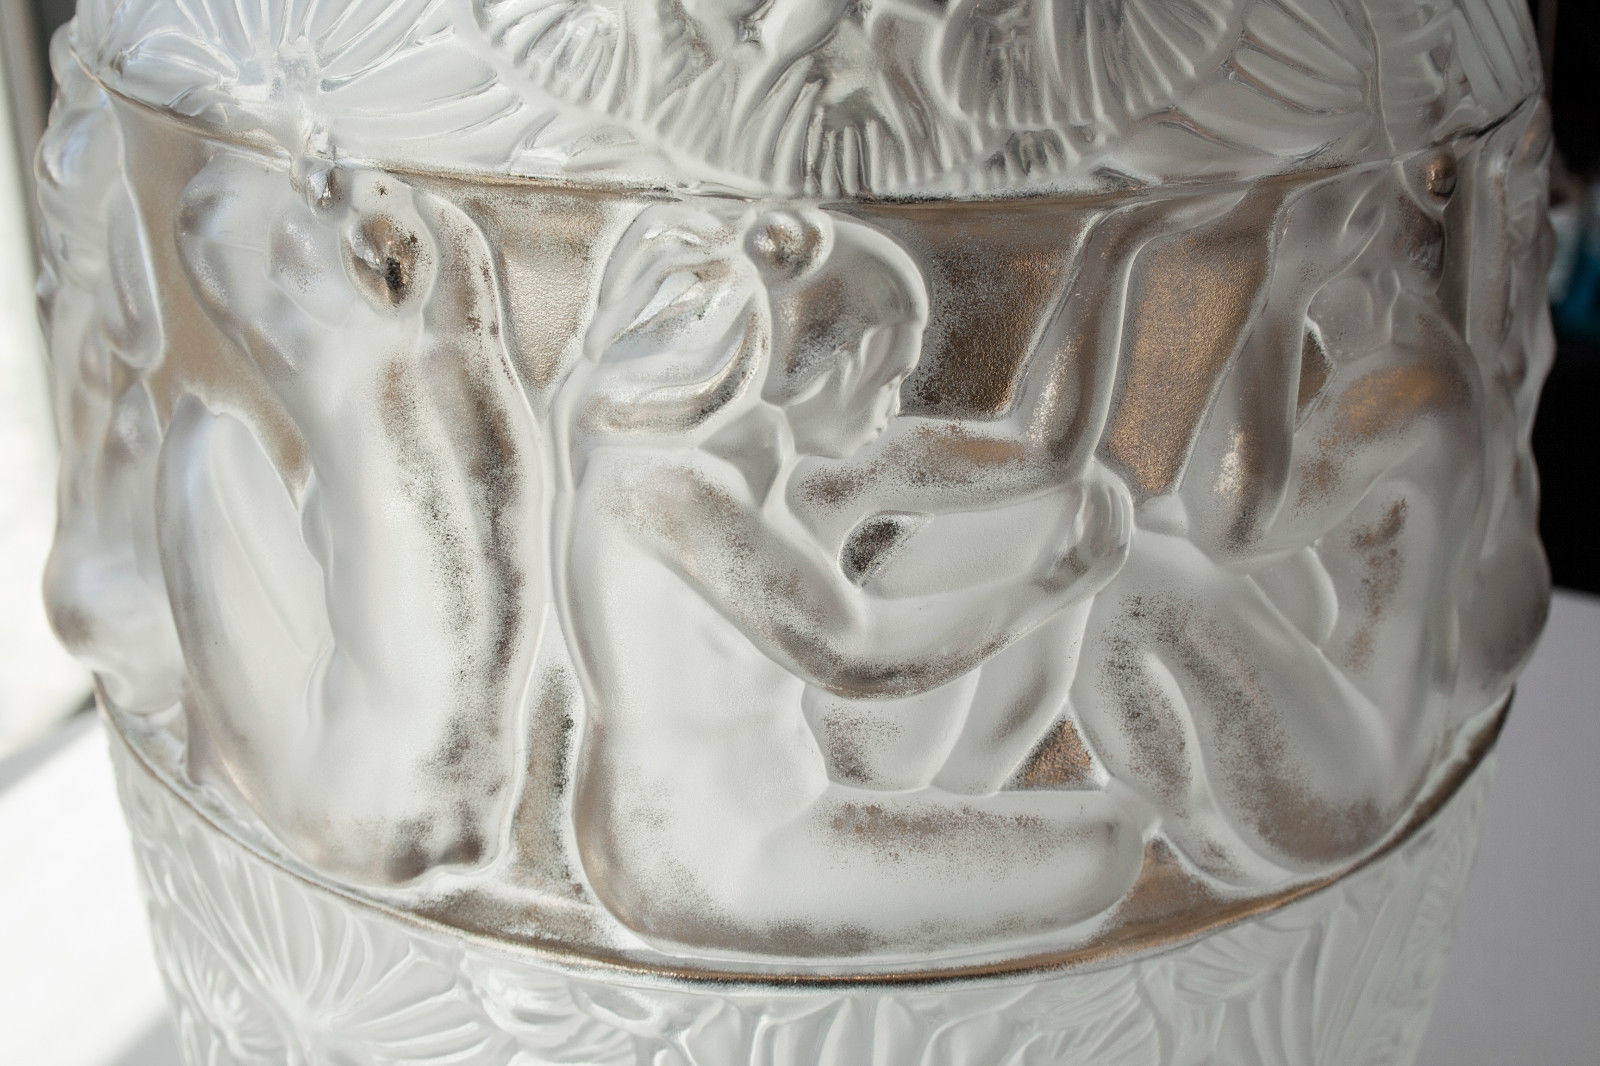 art glass vases ebay of lalique french art glass angelique vase clear gold guilding glass for lalique french art glass angelique vase clear gold guilding glass limited ed